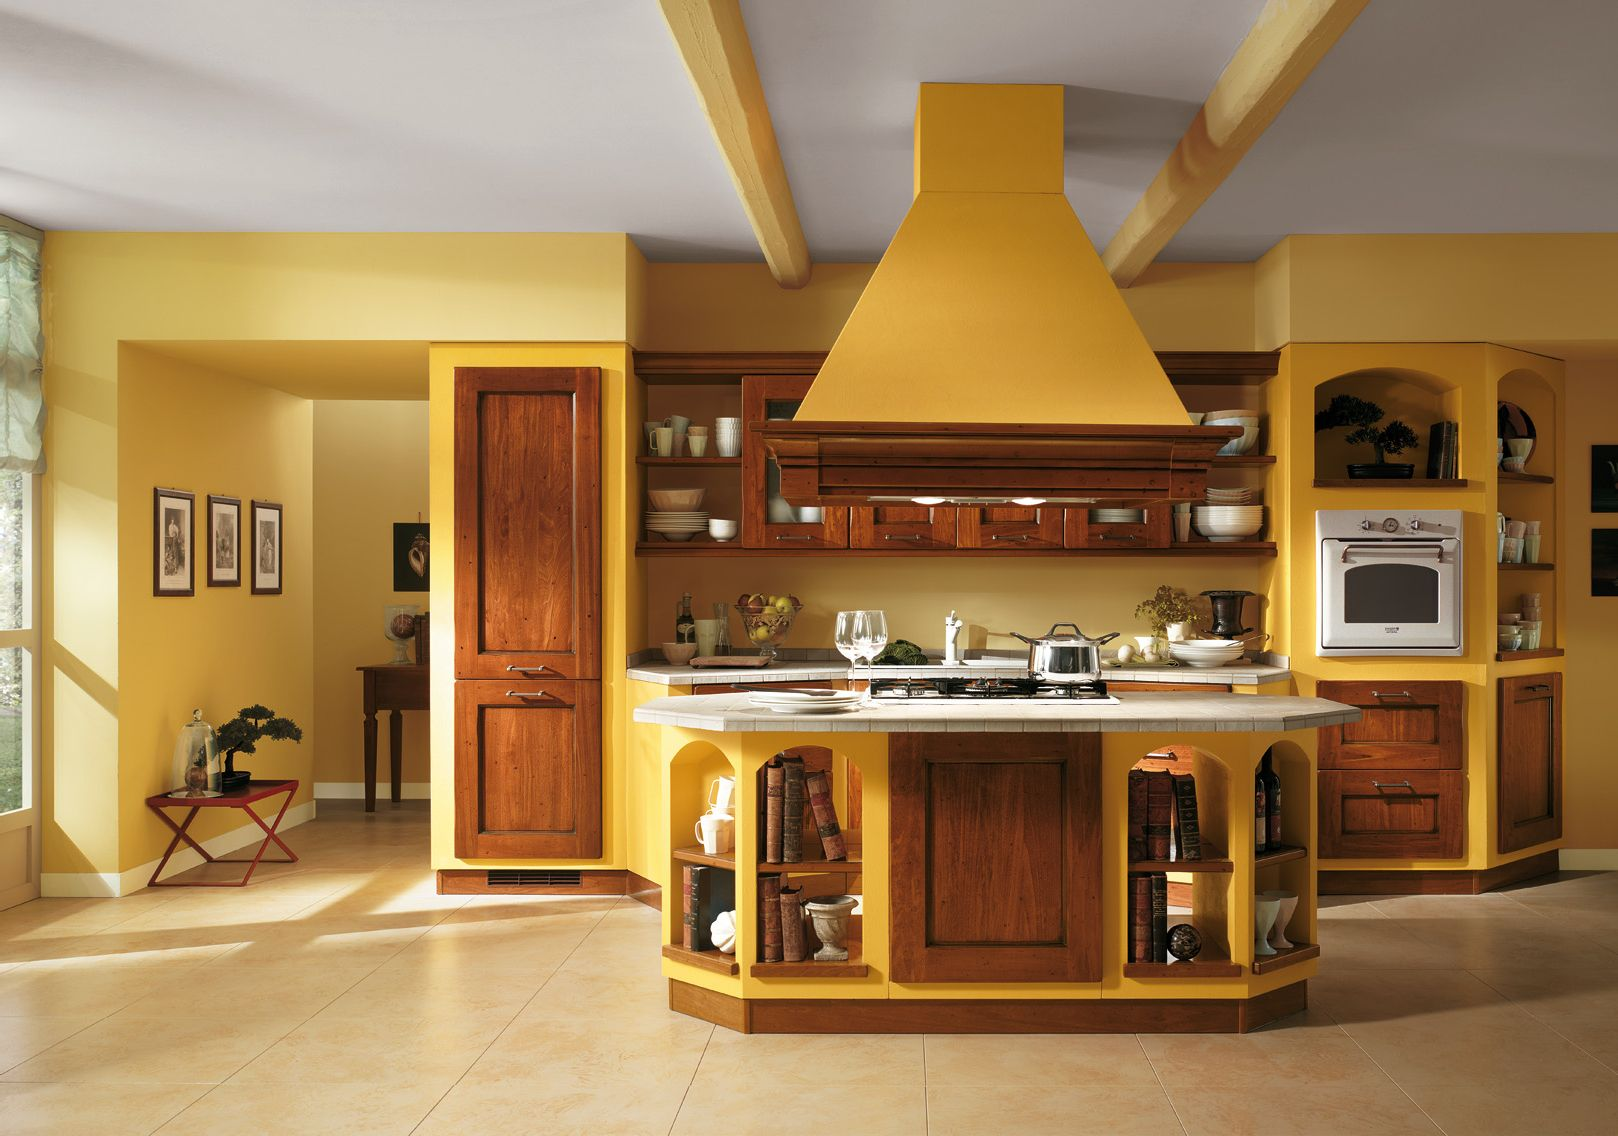 Italian Kitchen Color Schemes For Open Interior Design Big Chill Pro Line Embraces Fall Colors